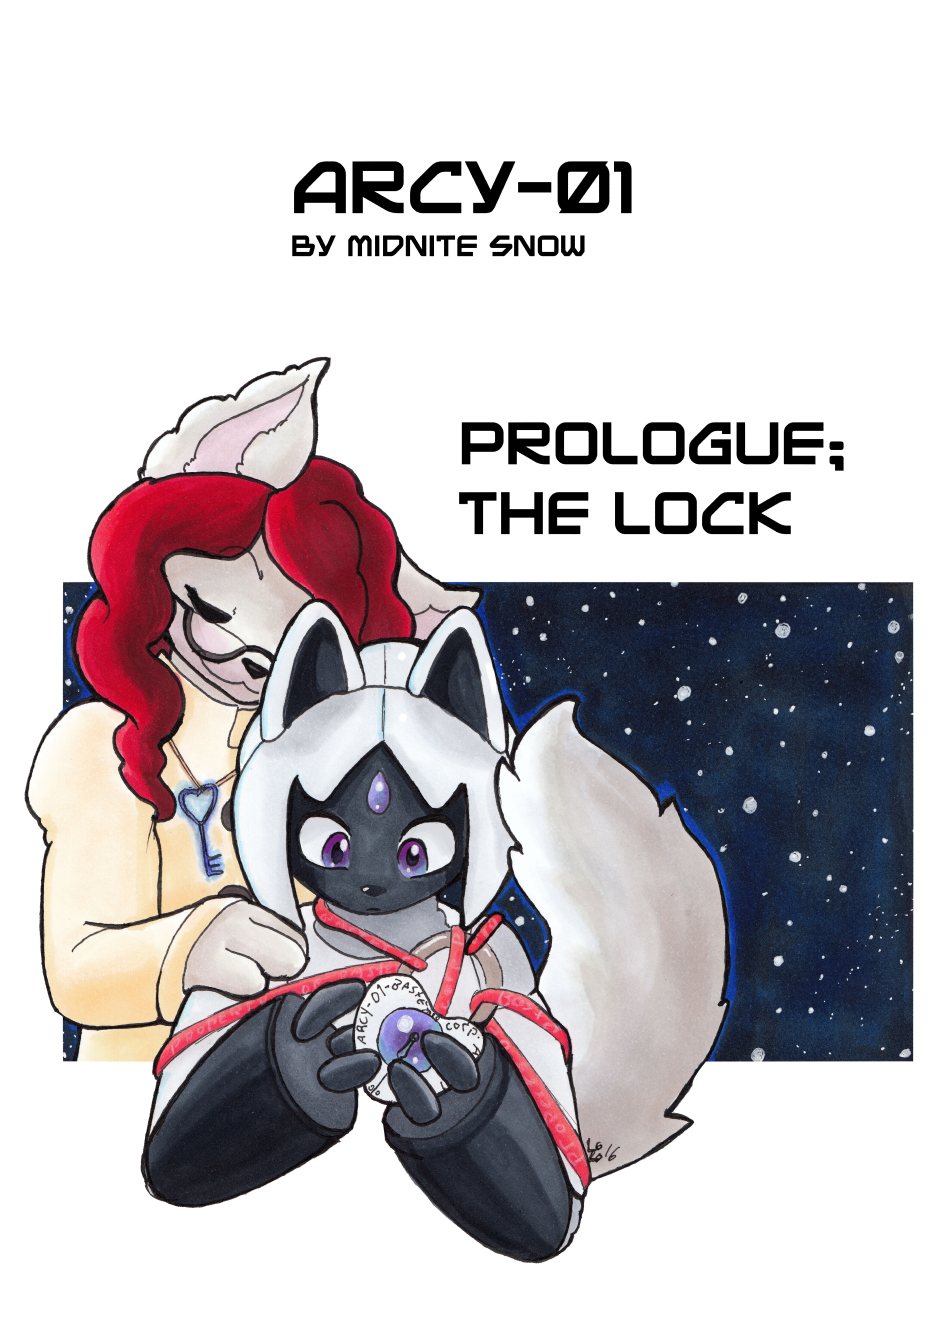 Prologue: the lock